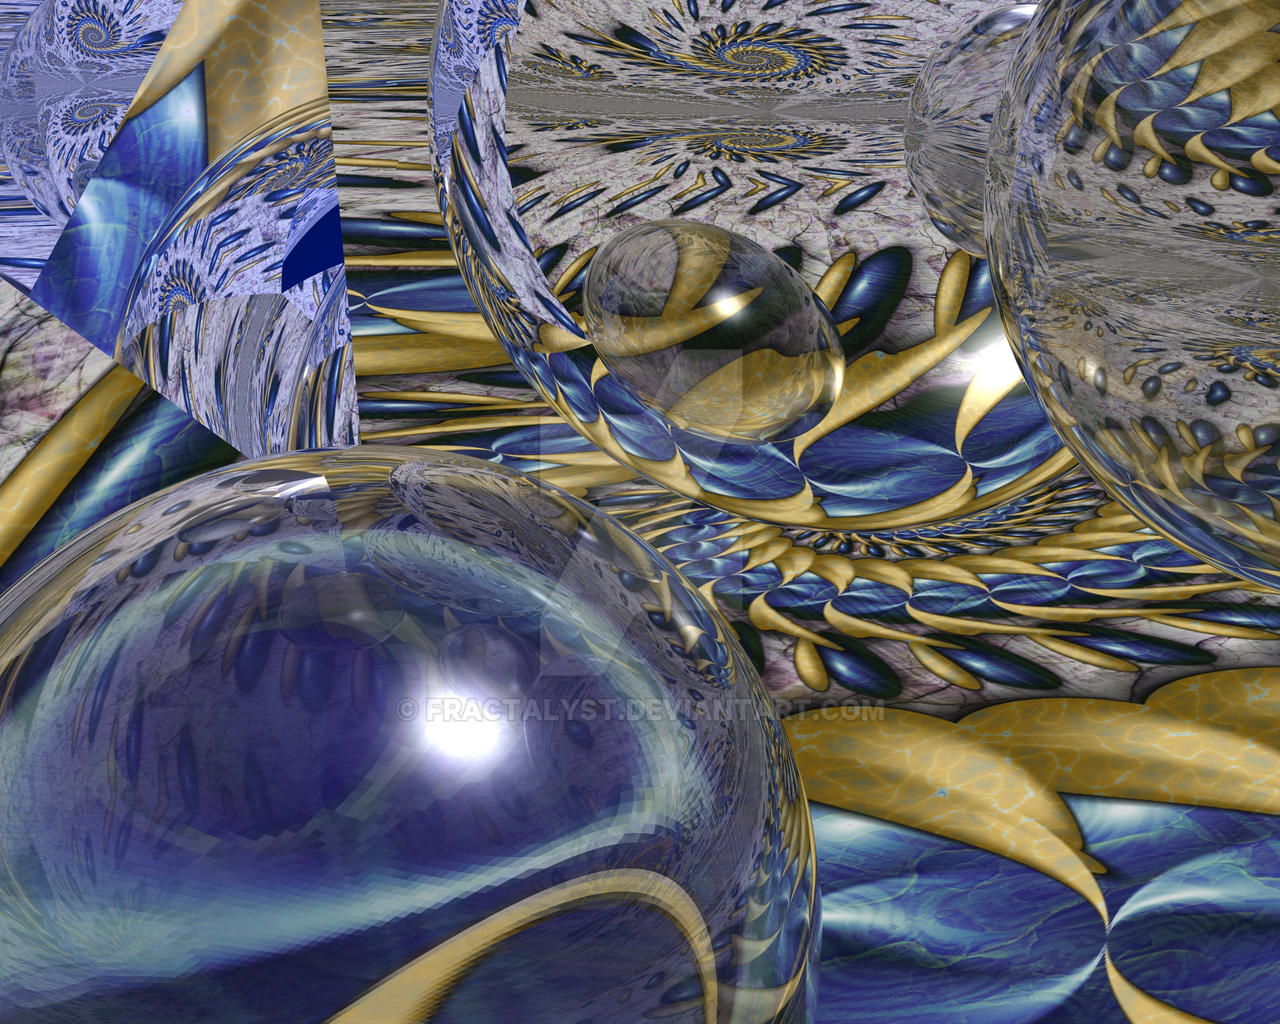 reflecktions by fractalyst